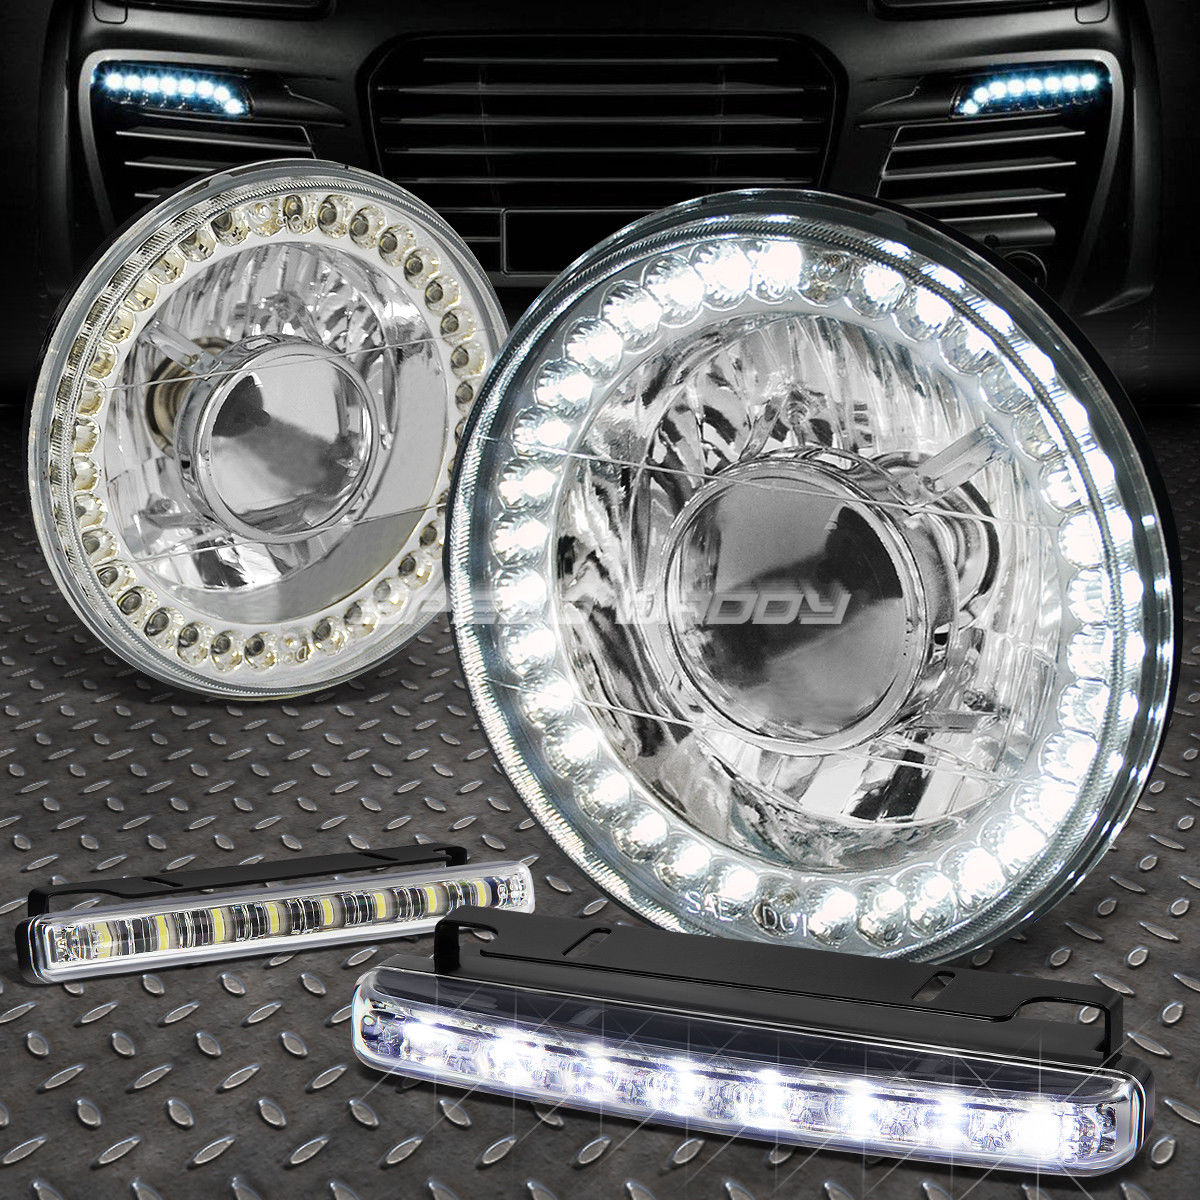 USフォグライト 7x7 ROUND CHROME PROJECTOR LED HEADLIGHT+8 LED GRILL FOG LIGHT FOR BRONCO/DART 7x7 ROUND CHROME PROJECTOR LEDヘッドライト+ブロンコ/ダーツ用8 LEDグリルフォグライト